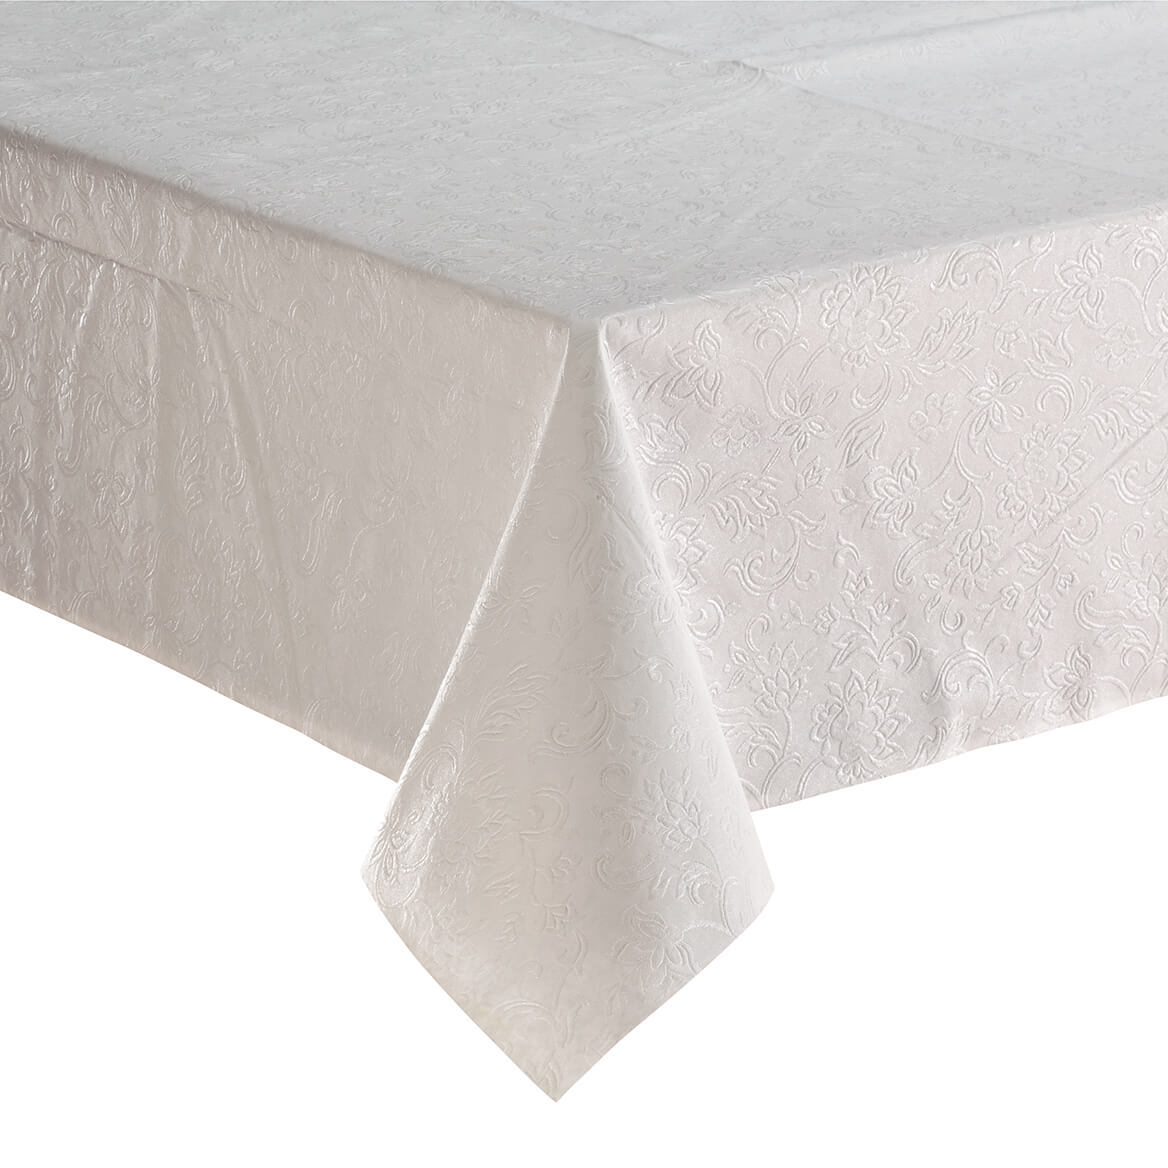 Table Protector Pad